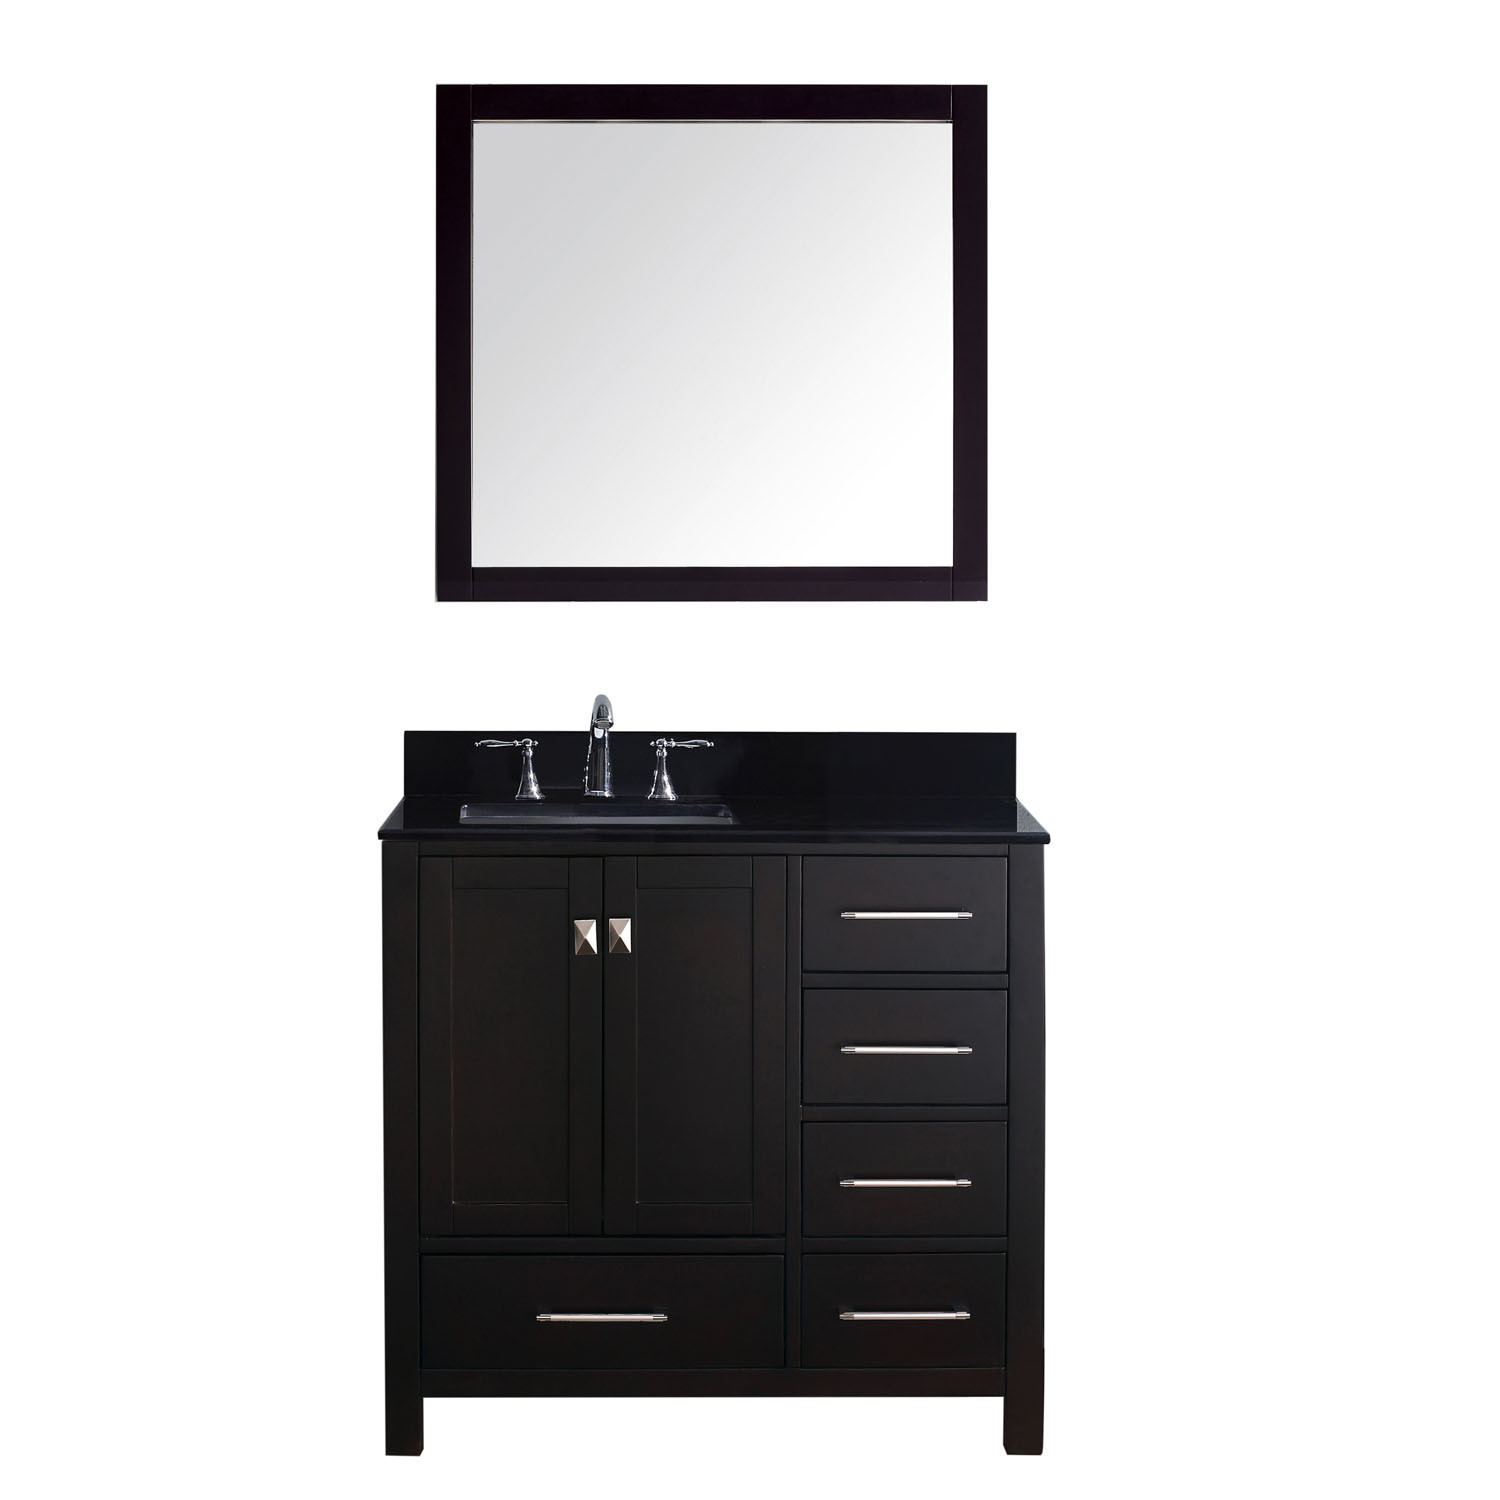 Virtu GS-50036-BGSQ-ES Caroline Avenue 36 Inch Single Bathroom Vanity Set In Espresso